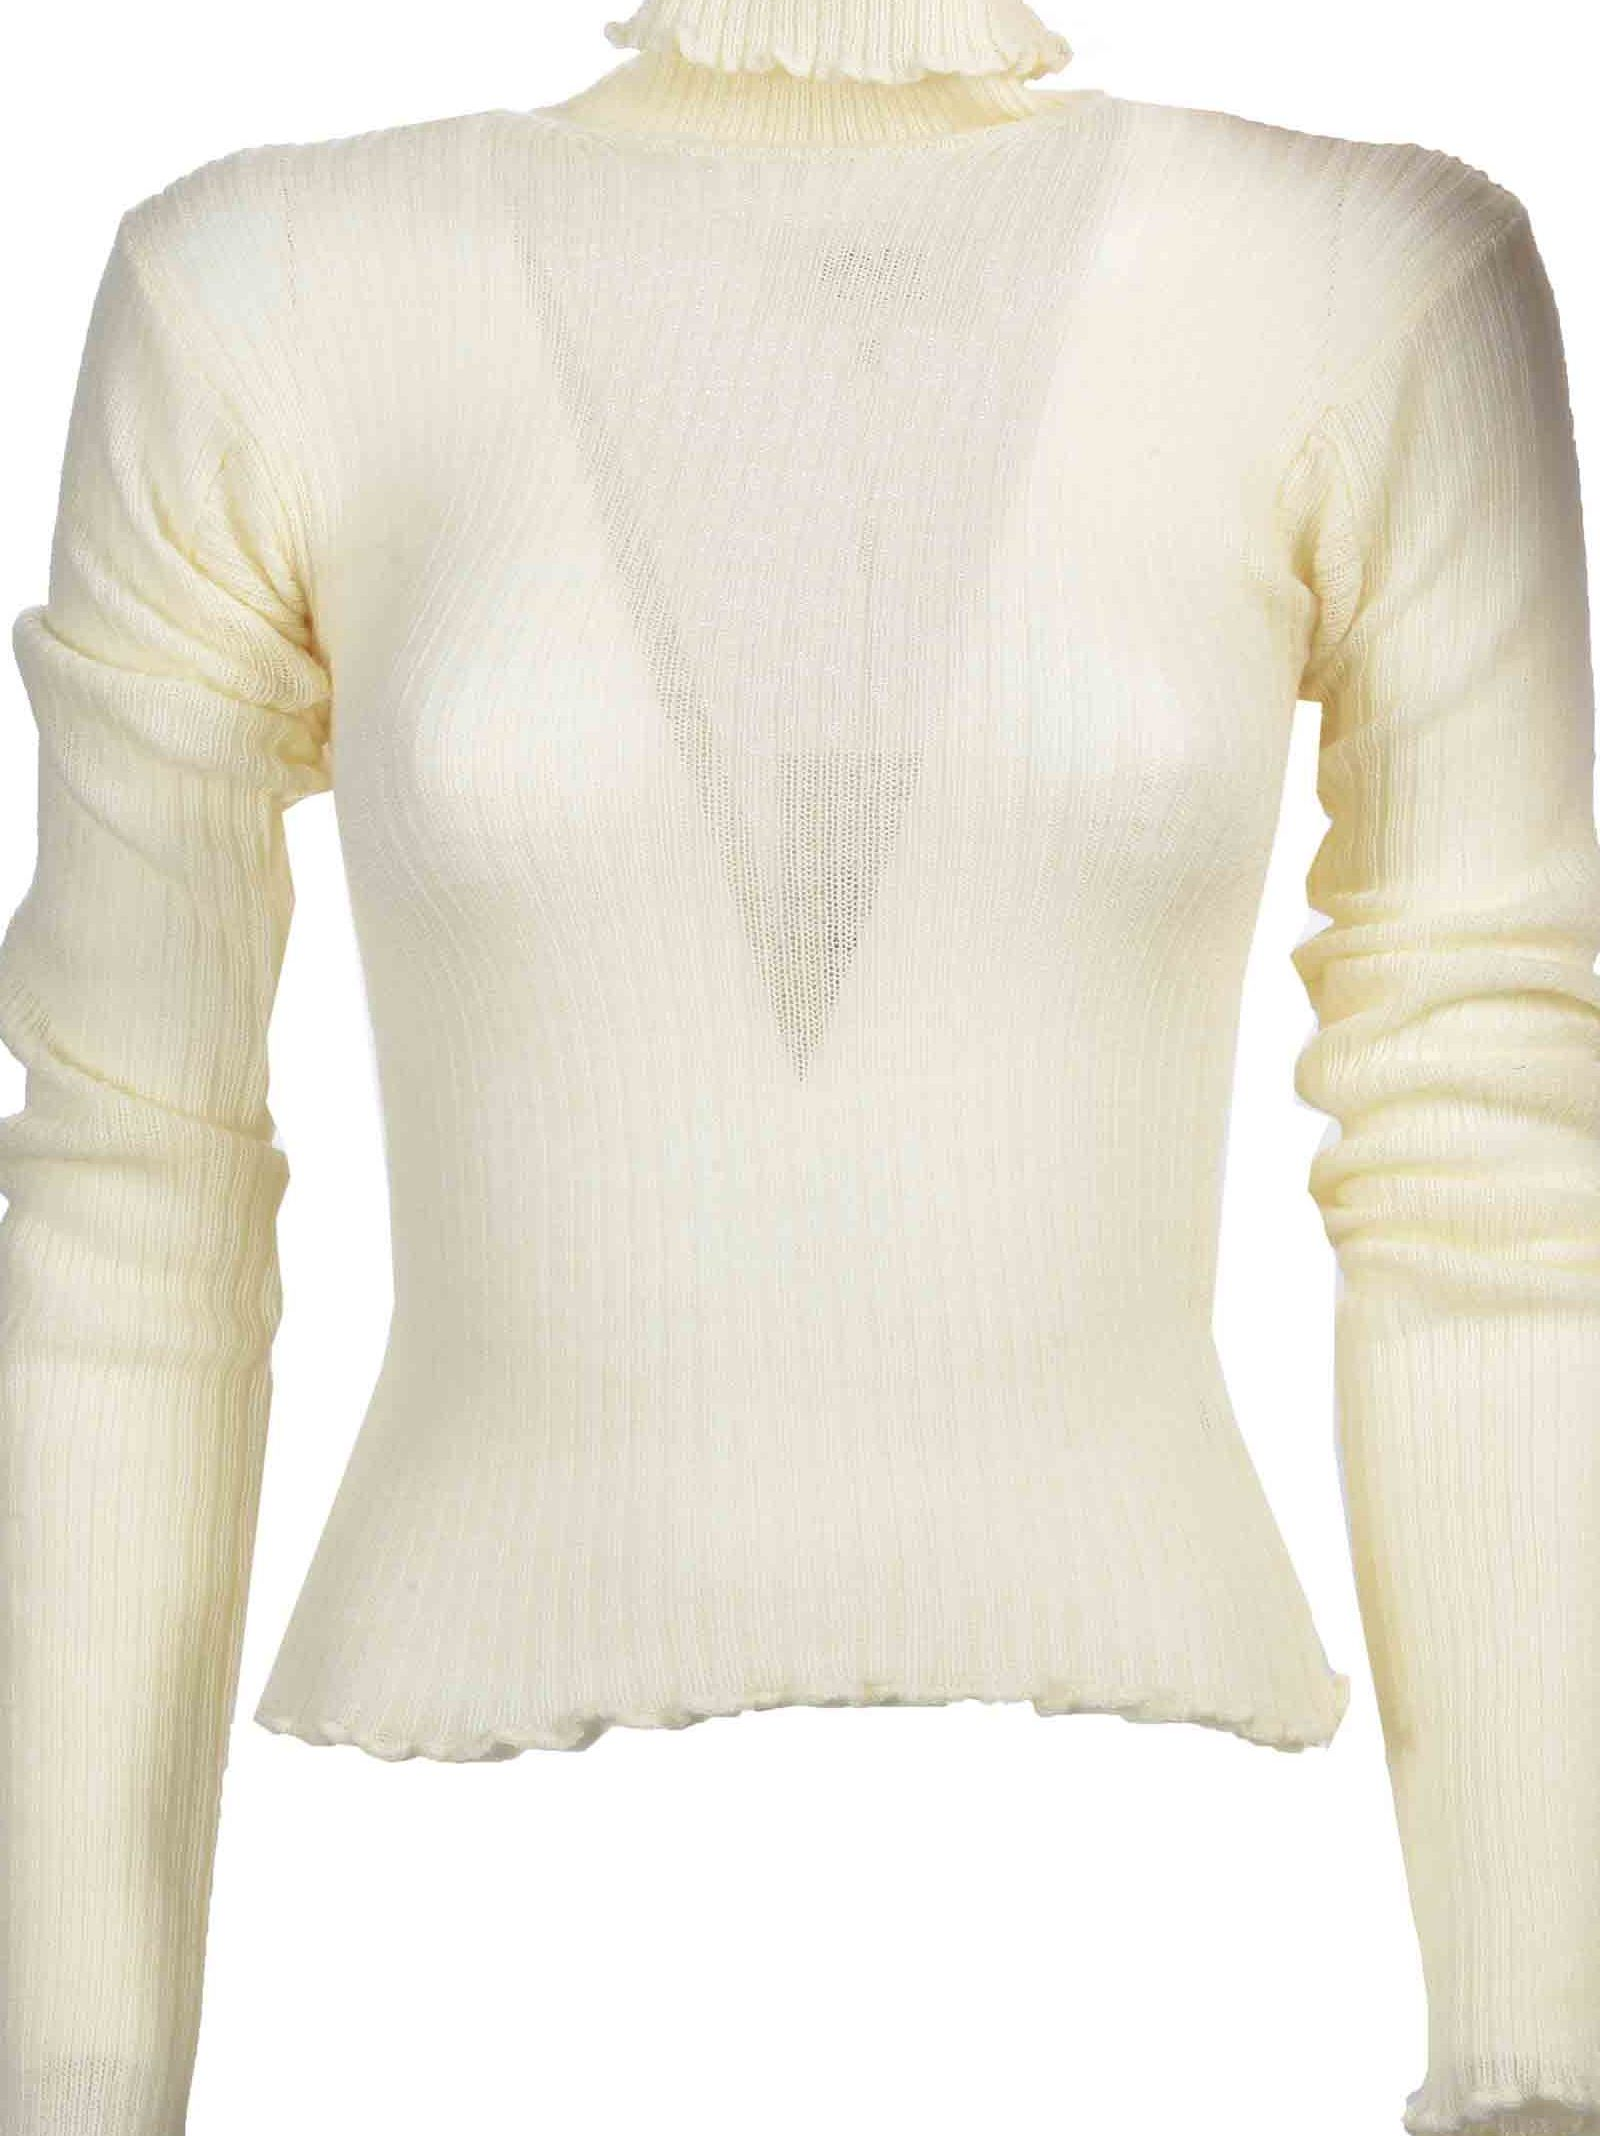 Mm6 Rib Turtle Neck Sweater